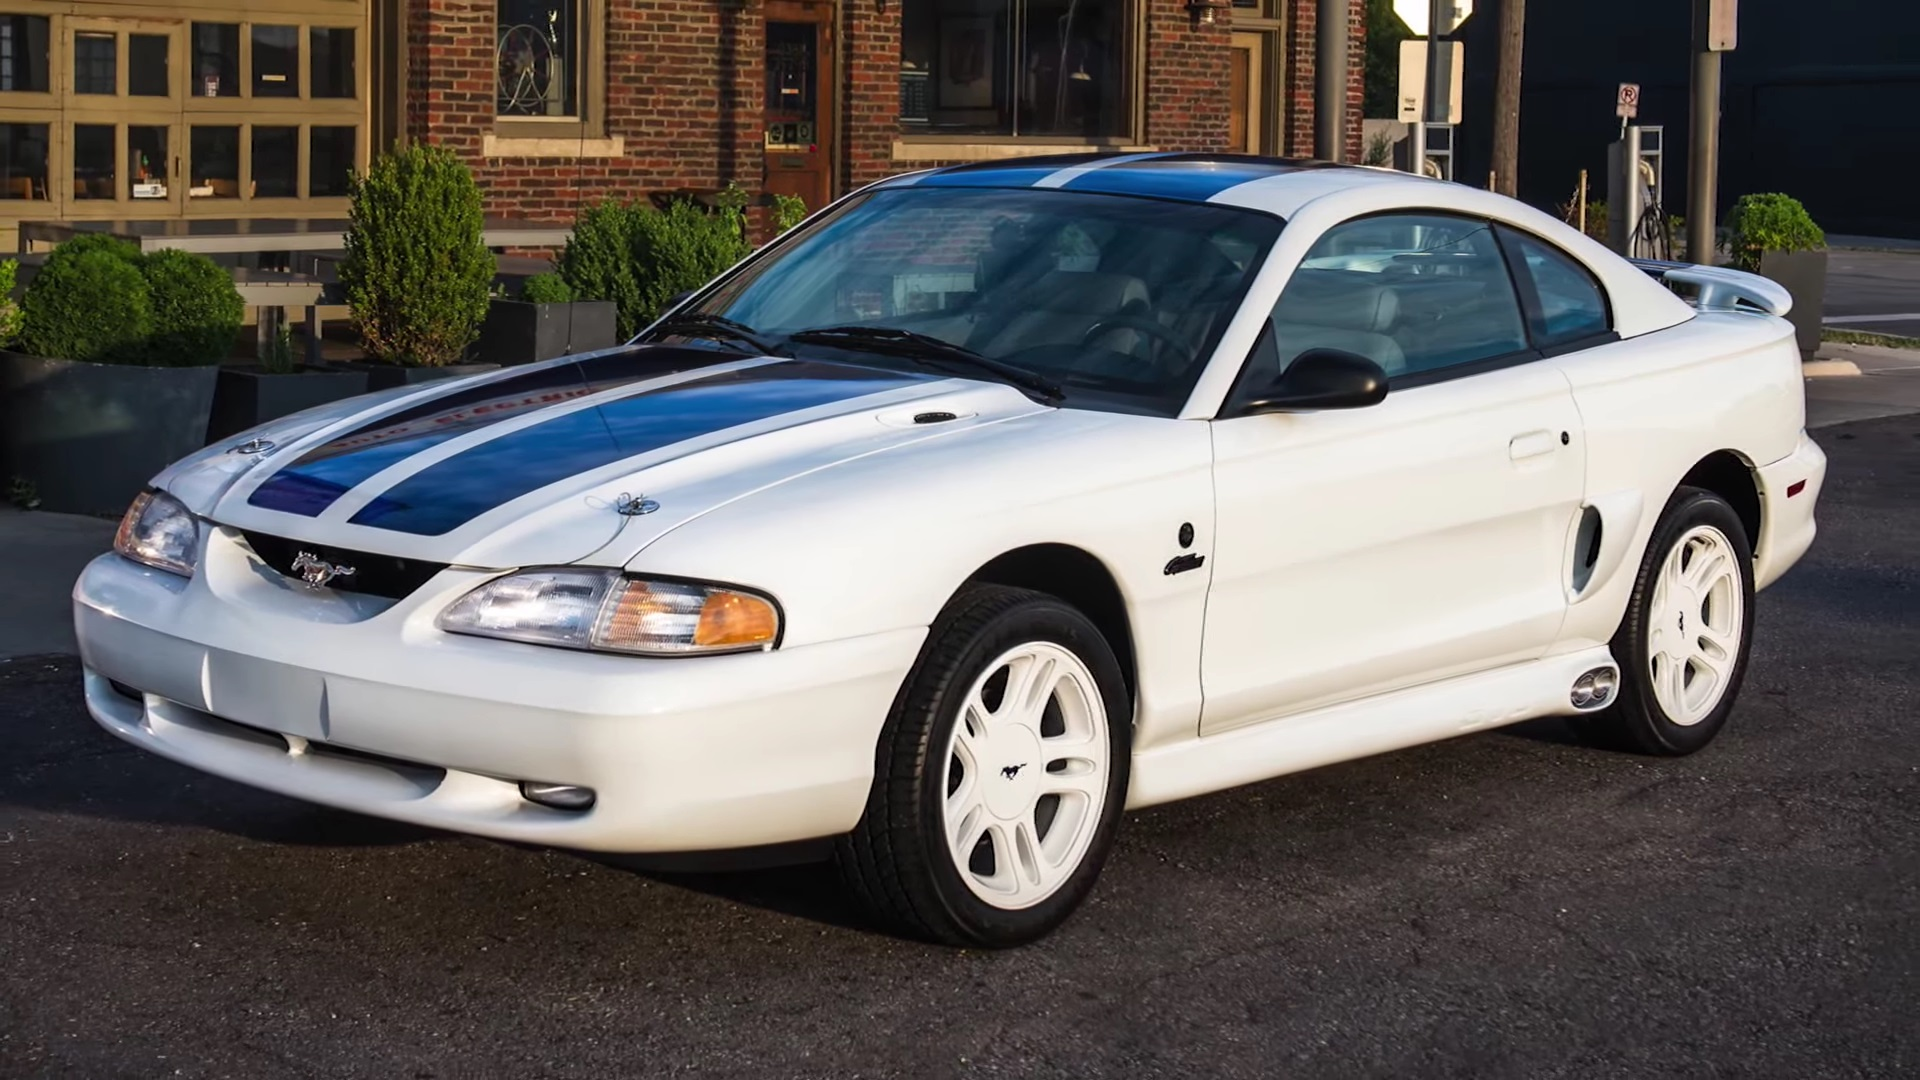 Video: Quick Look At A 1997 Ford Mustang SVO Woodward Dream Cruise